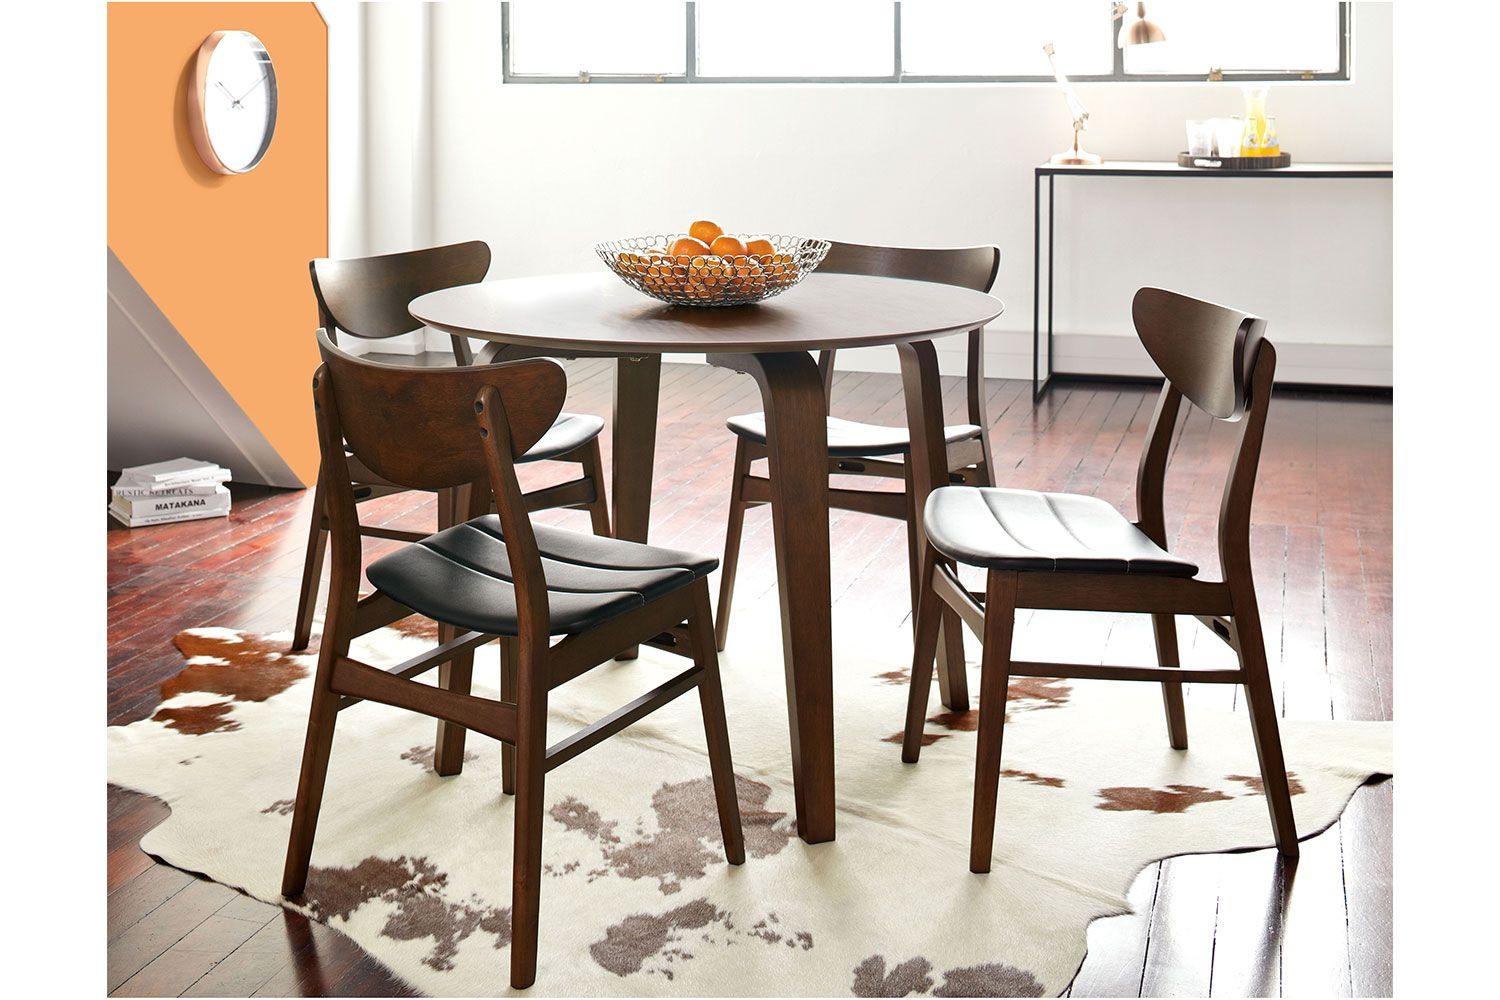 Round dining table and chairs for 4  The Brady  Piece Dining Suite is a charming dining suite It